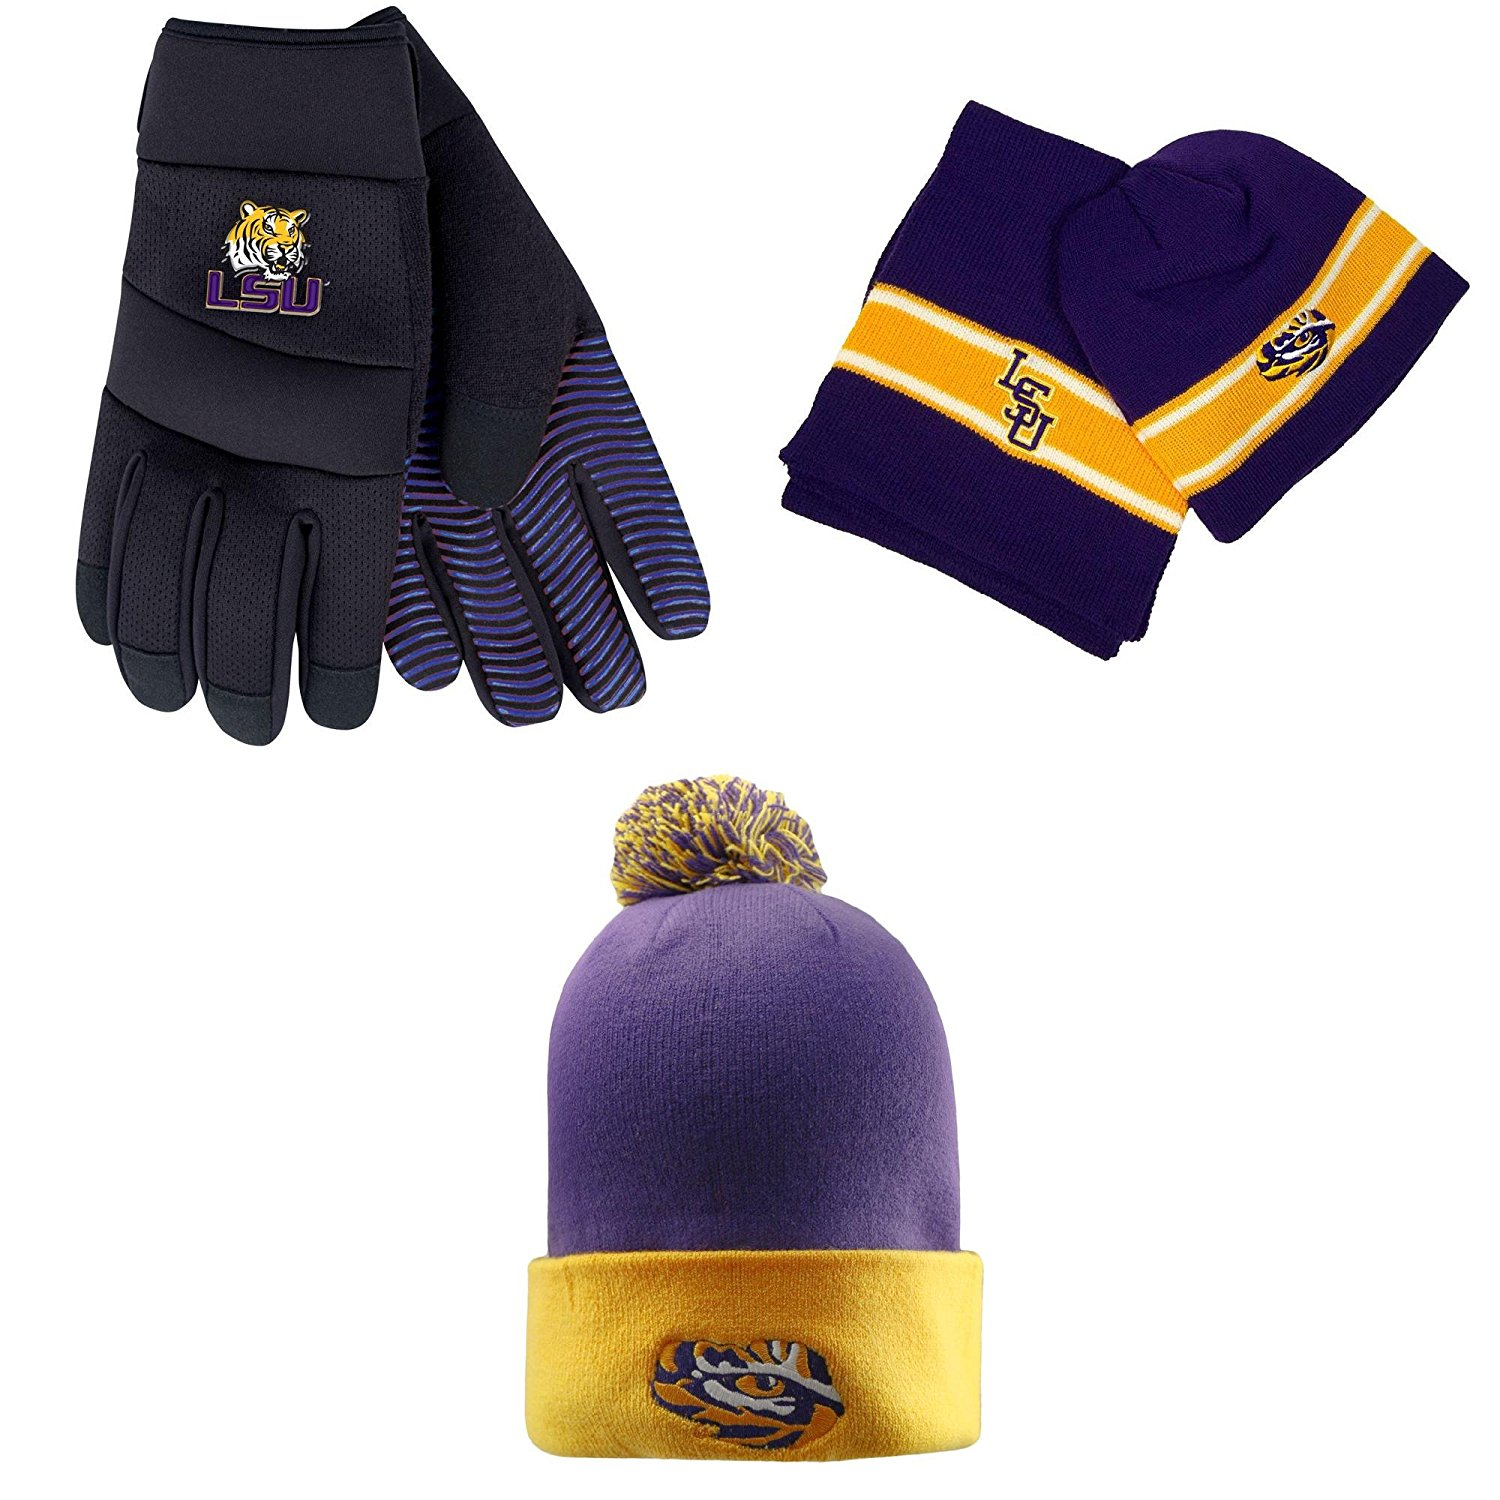 a7a556887b5 Get Quotations · NCAA LSU Tigers Grip Work Glove Ez Hat Scarf Combo And Pom Beanie  Hat 3 Pack